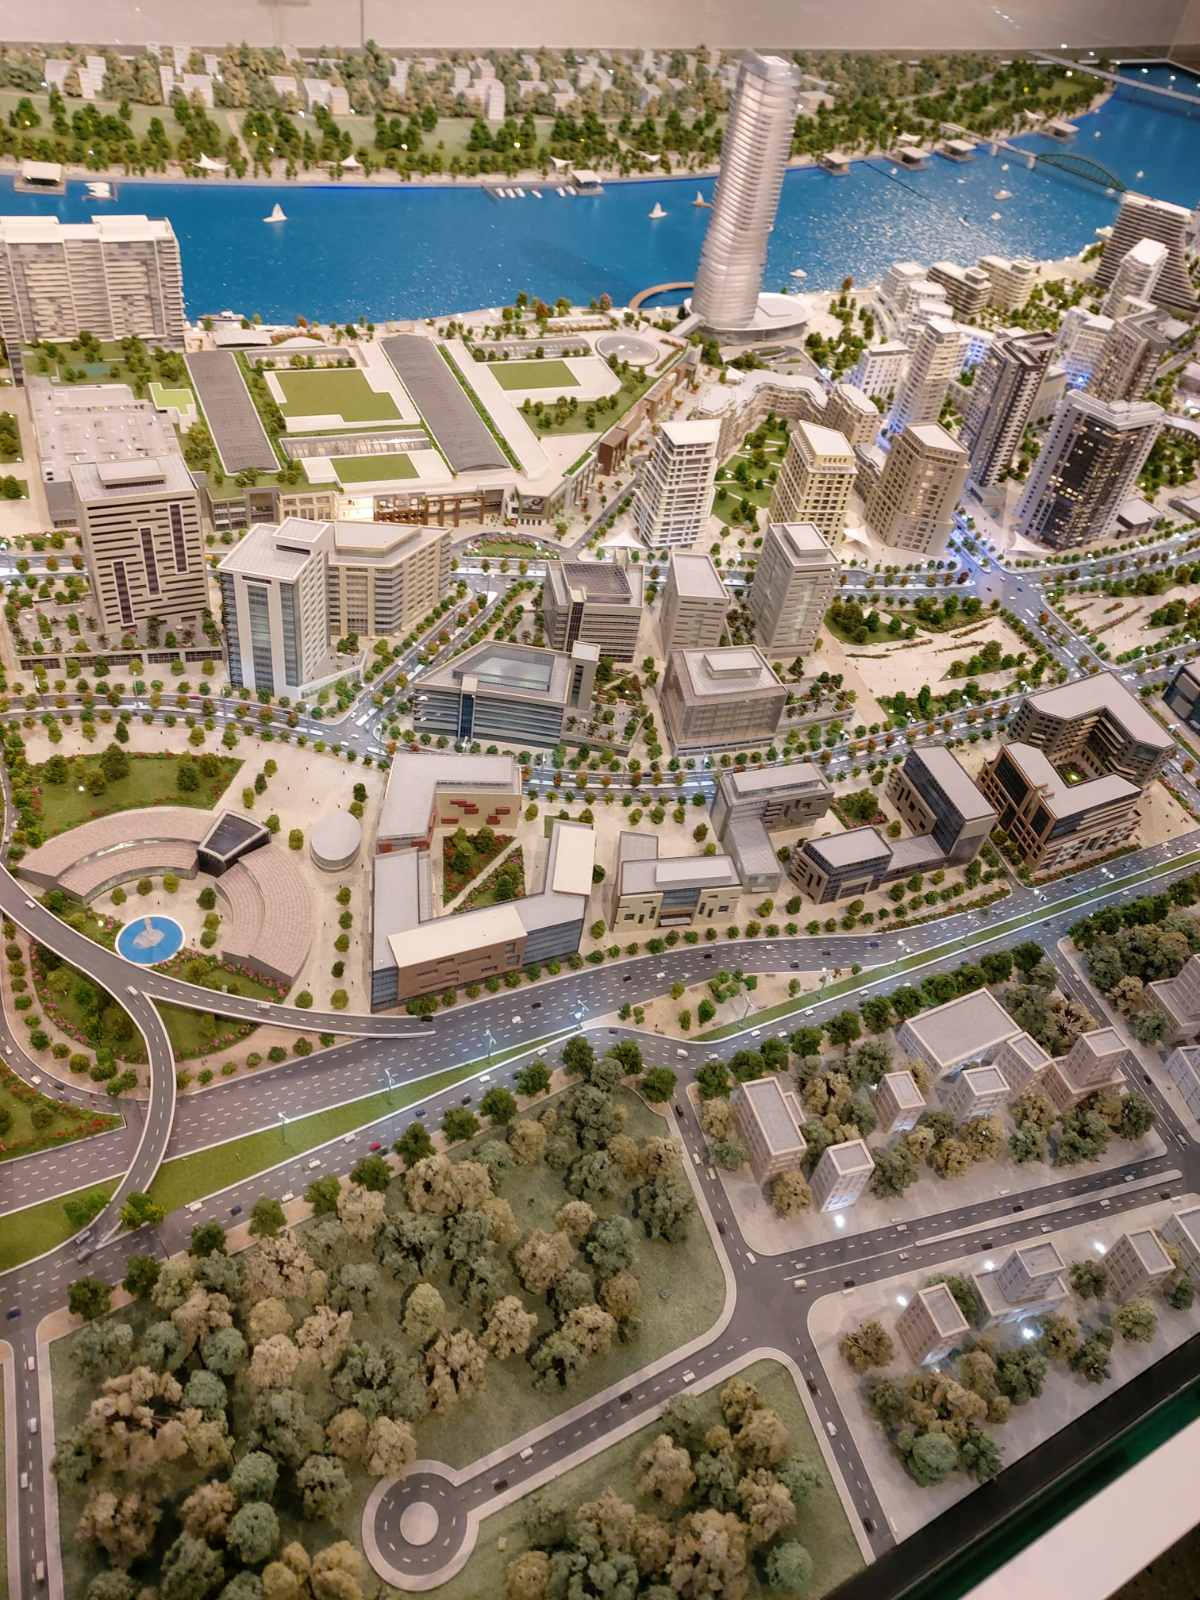 Model of the newly construced Belgrade Waterfront